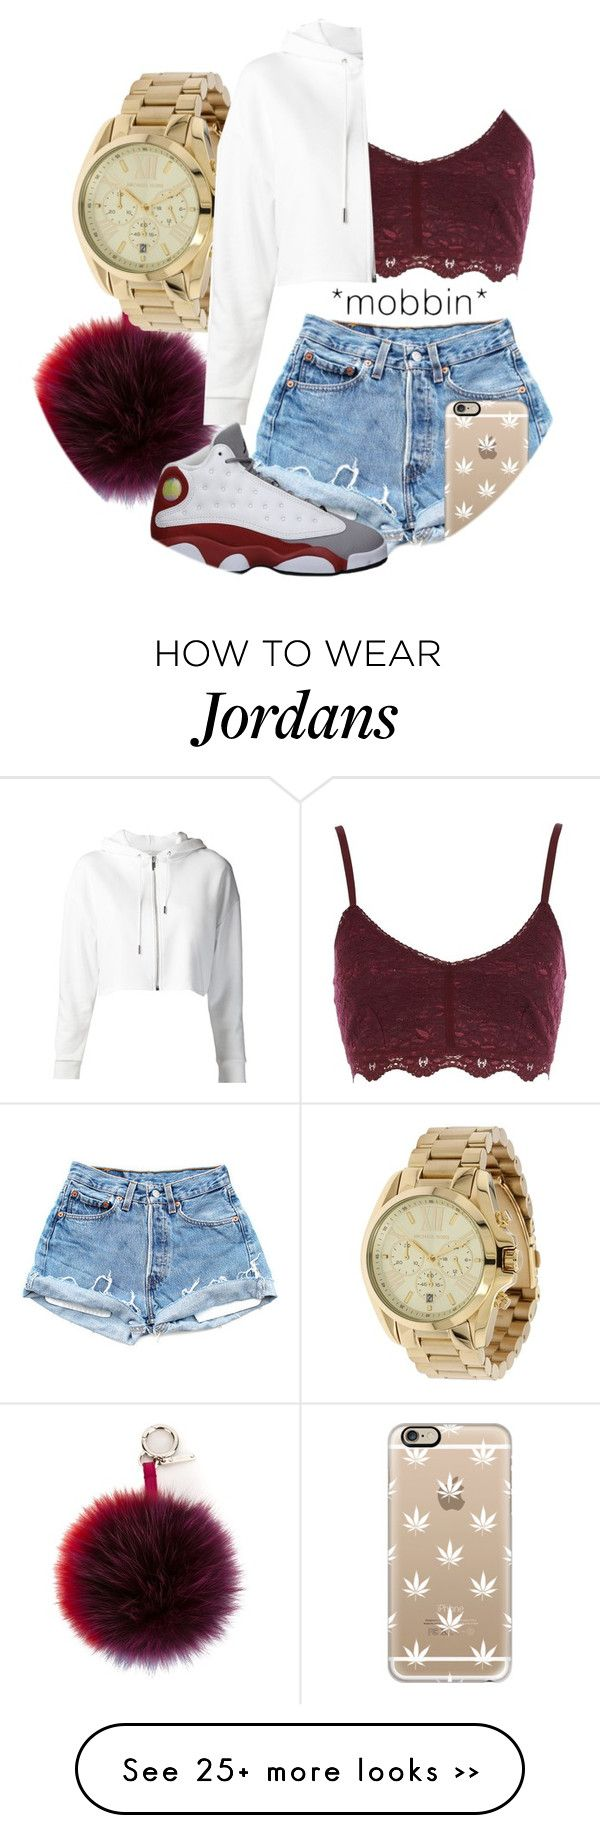 """""""first day is monday…"""" by yvnglisha on Polyvore featuring River Island, Fendi, Michael Kors, Yves Saint Laurent and Casetify"""